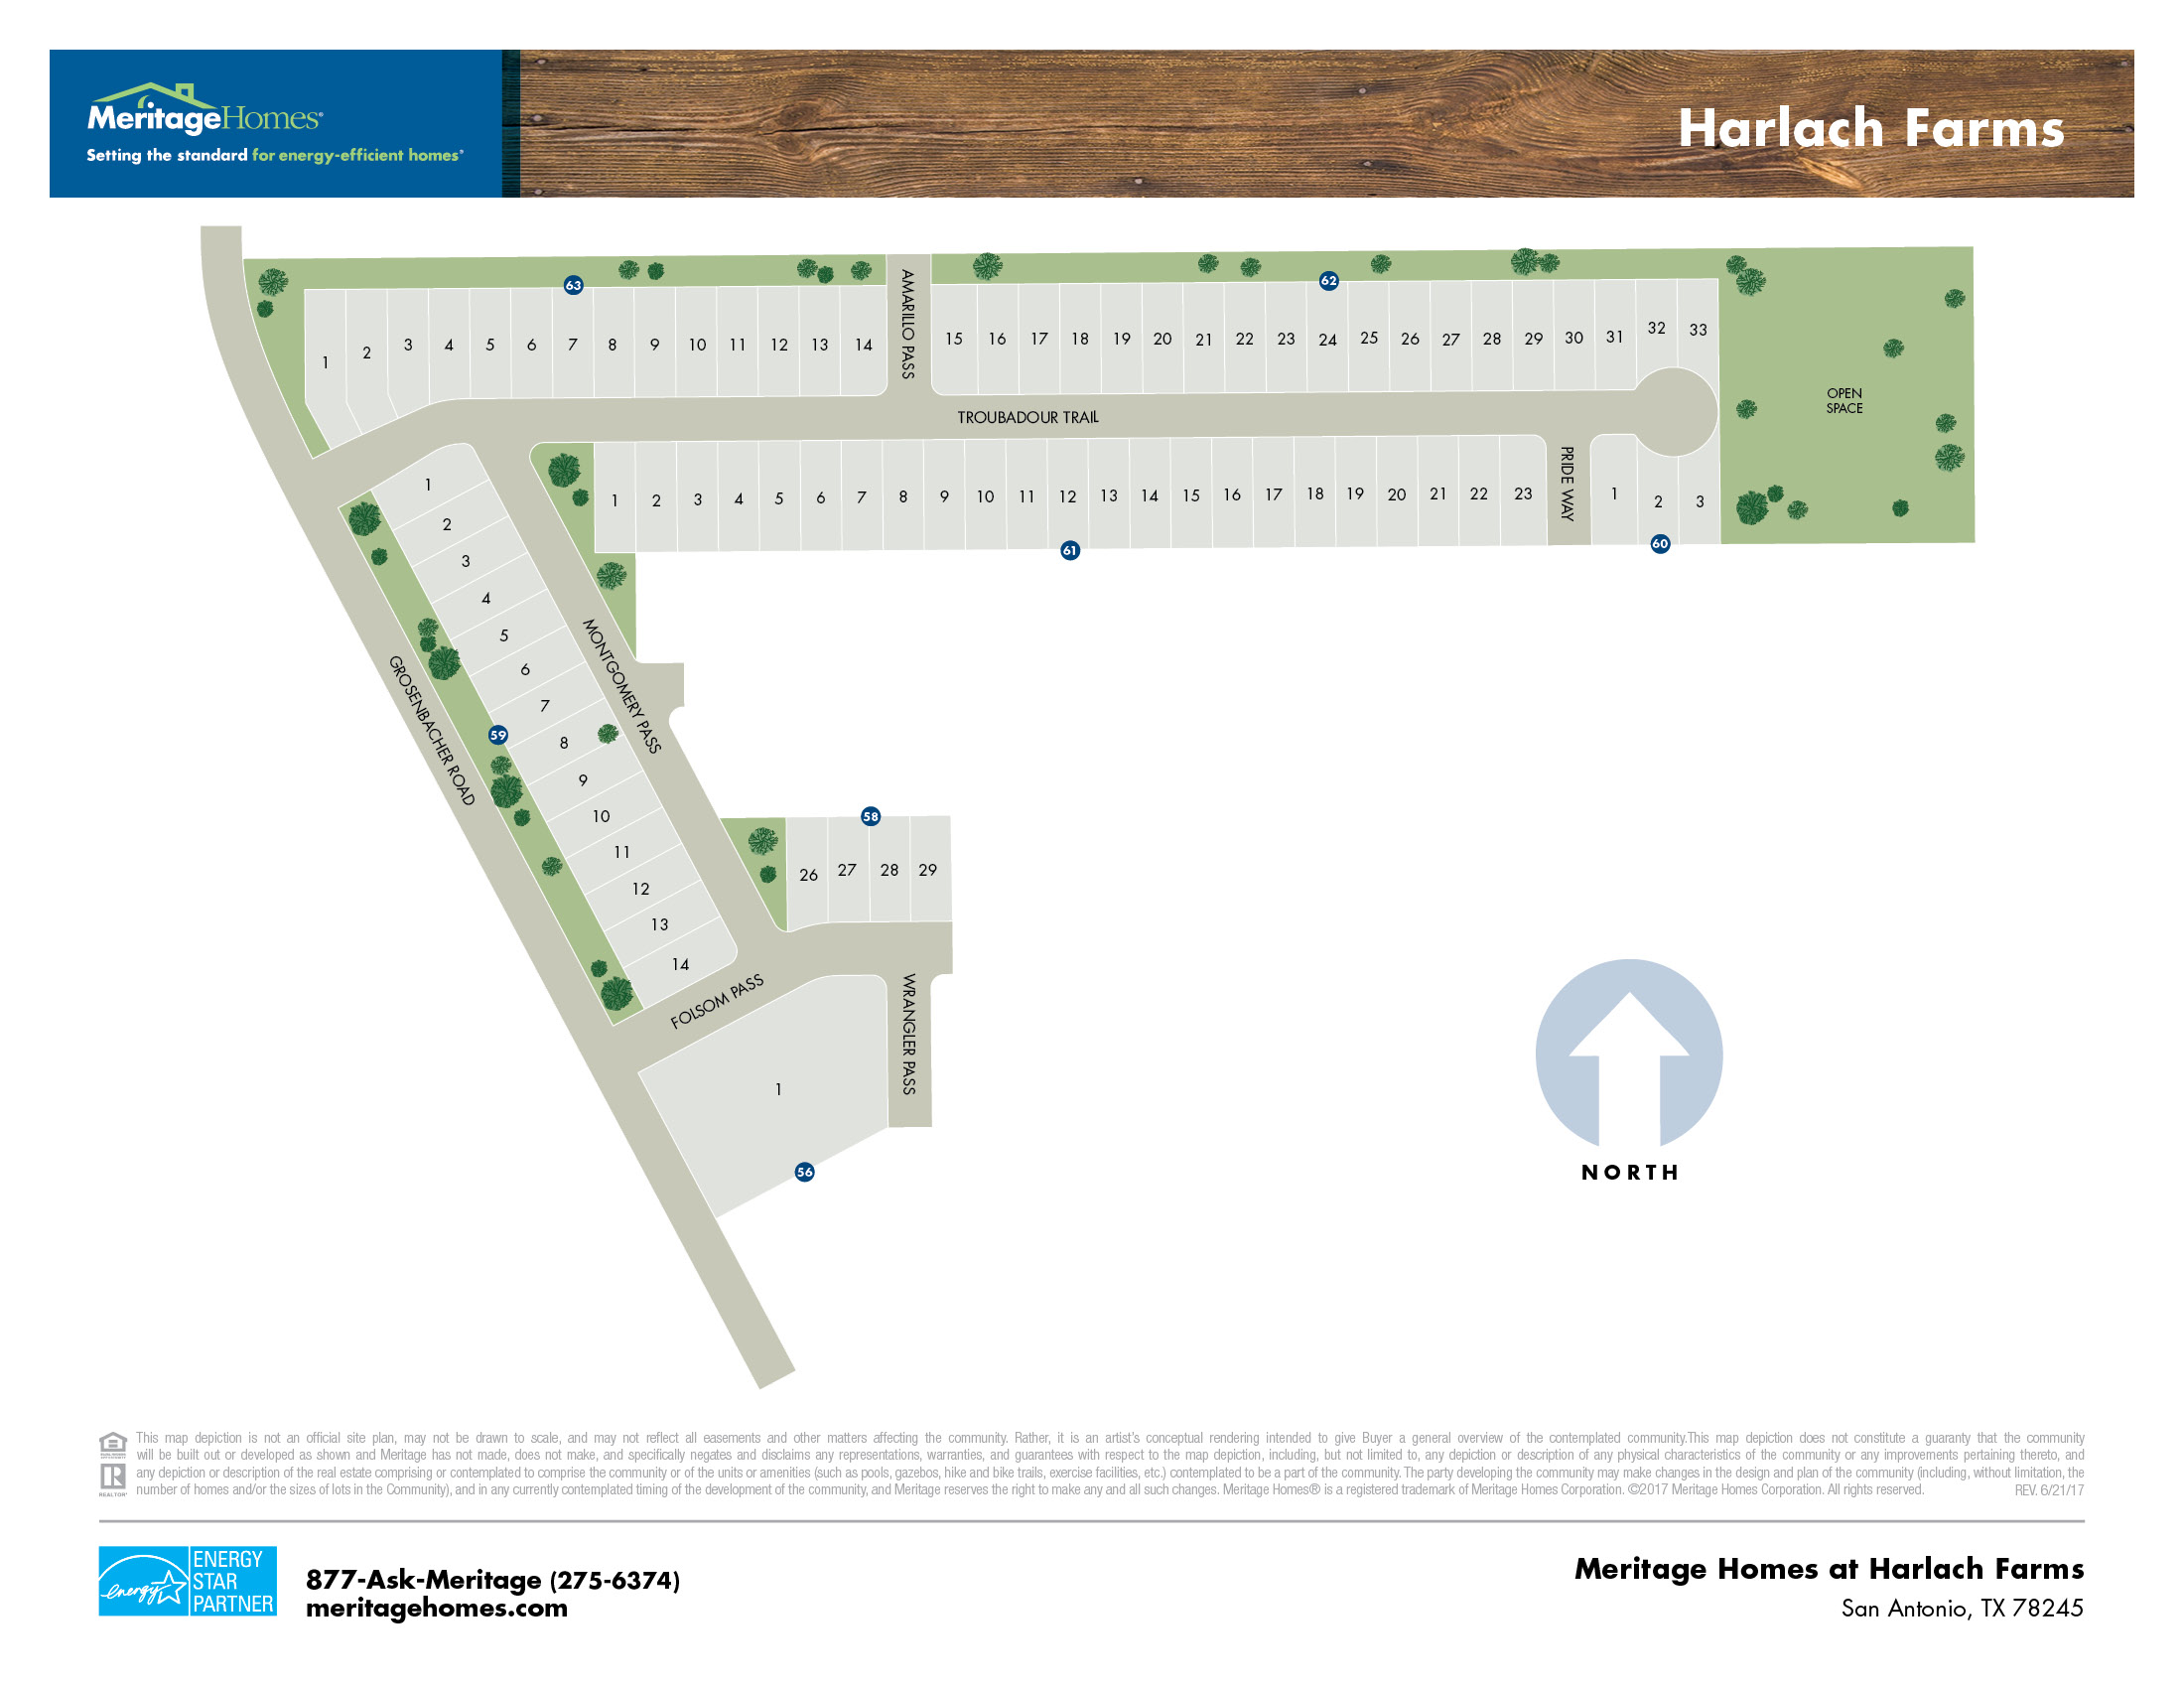 Harlach Farms Site Map